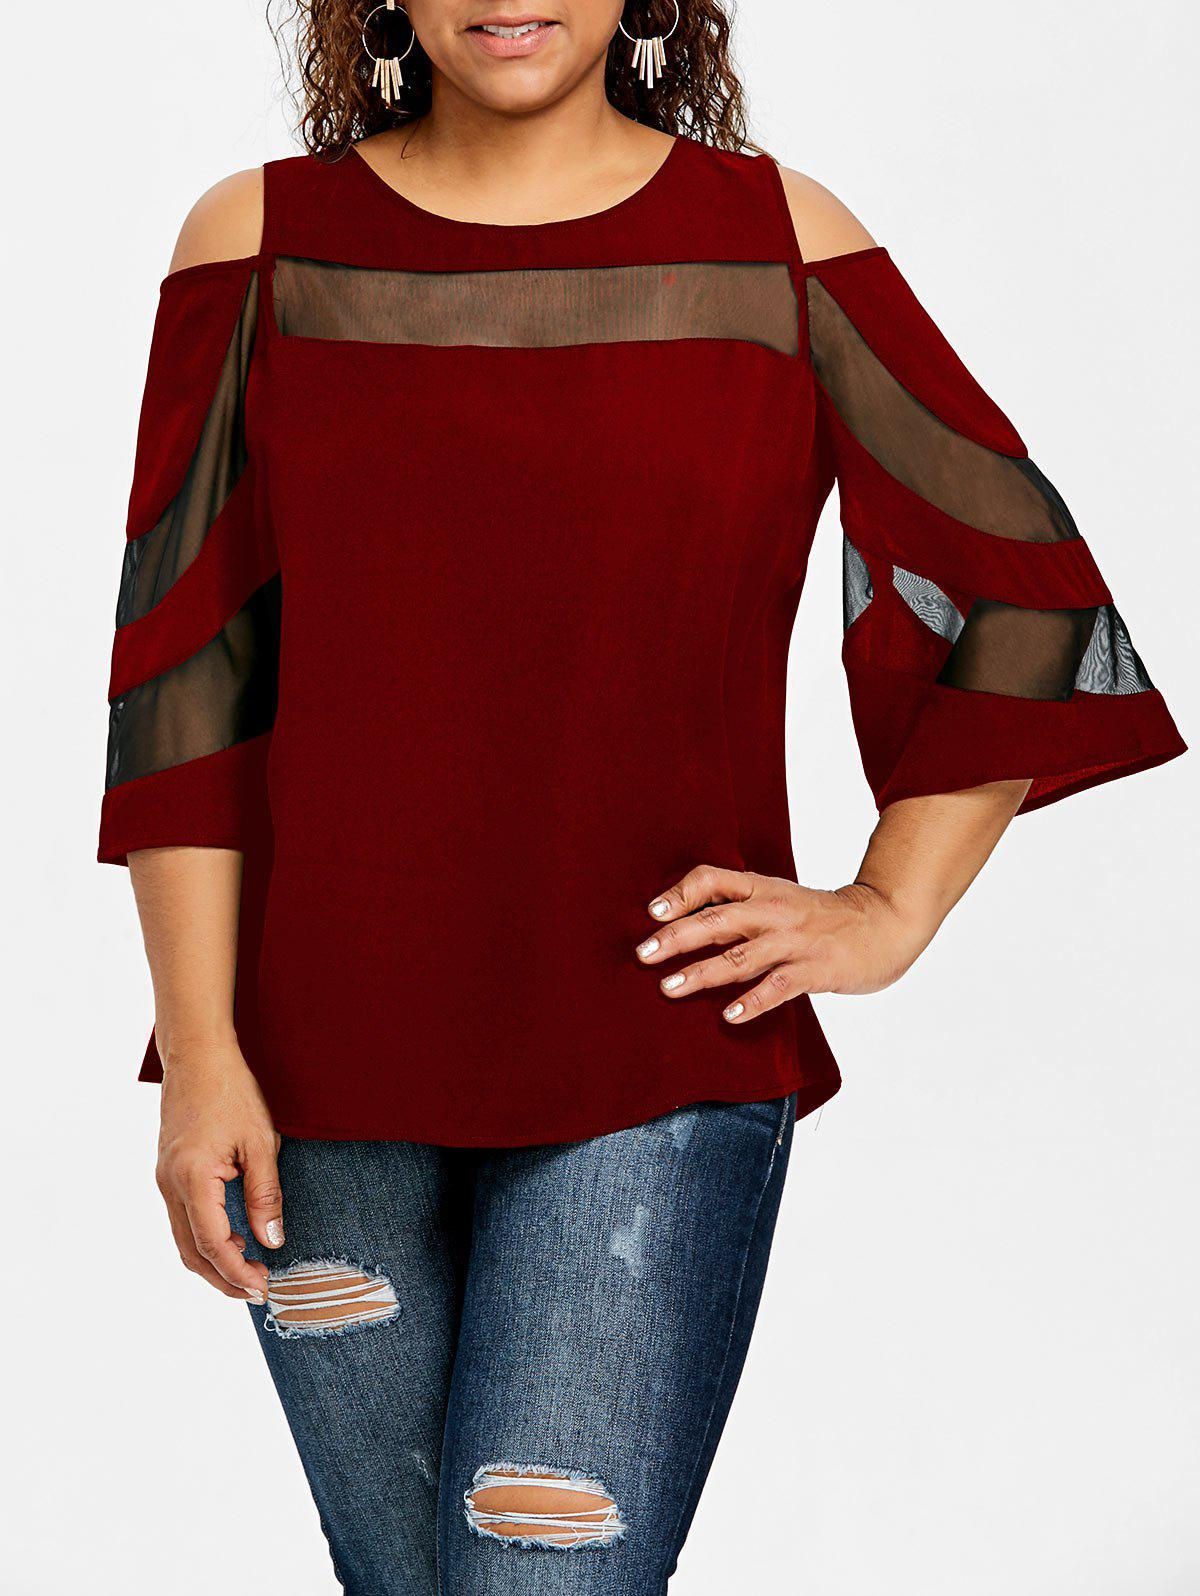 ba7a78910e000c 50% OFF] Plus Size Mesh Insert Cold Shoulder Top | Rosegal